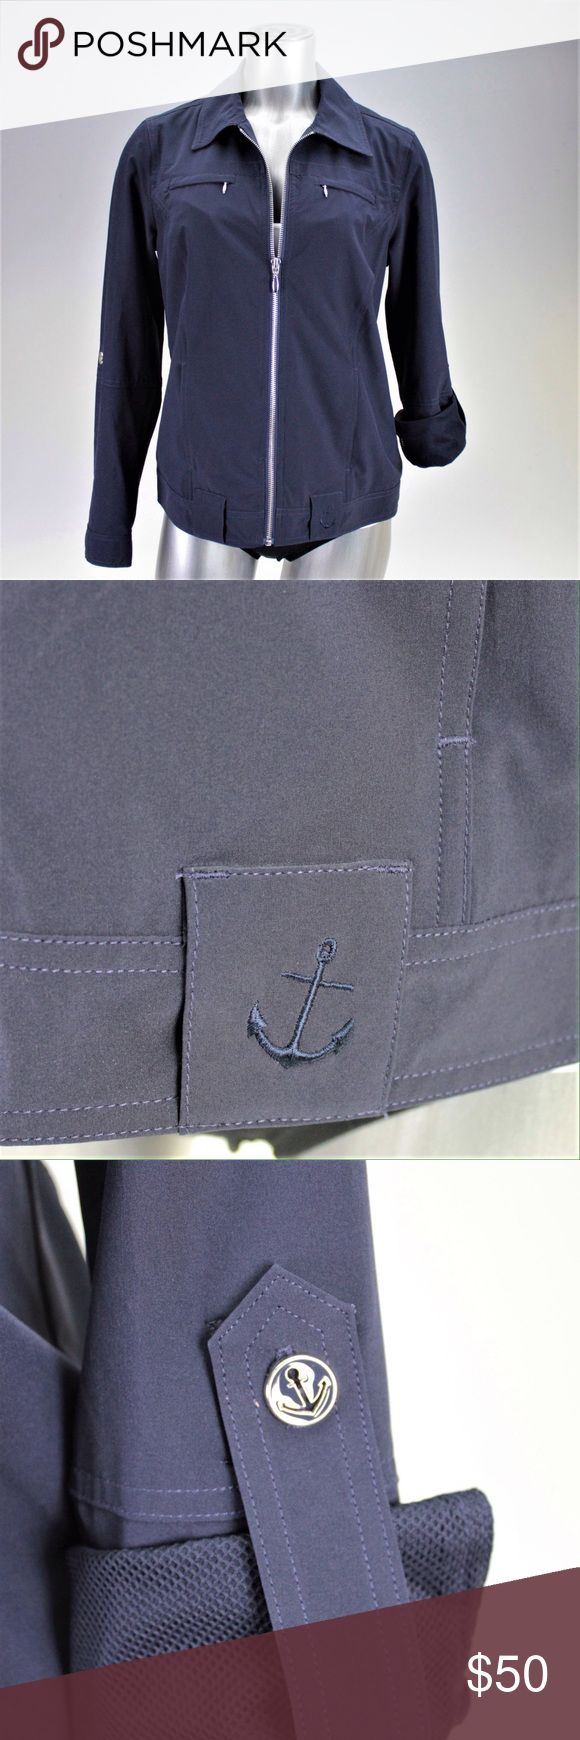 Navy Blue Lightweight Anchor Jacket This adorable windbreaker style jacket can be worn with the sleeves rolled or down. It's perfect for any breezy day or boat outing with anchor accents on the buttons and bottom hem. Fabric content in photos. Lana Lee Jackets & Coats